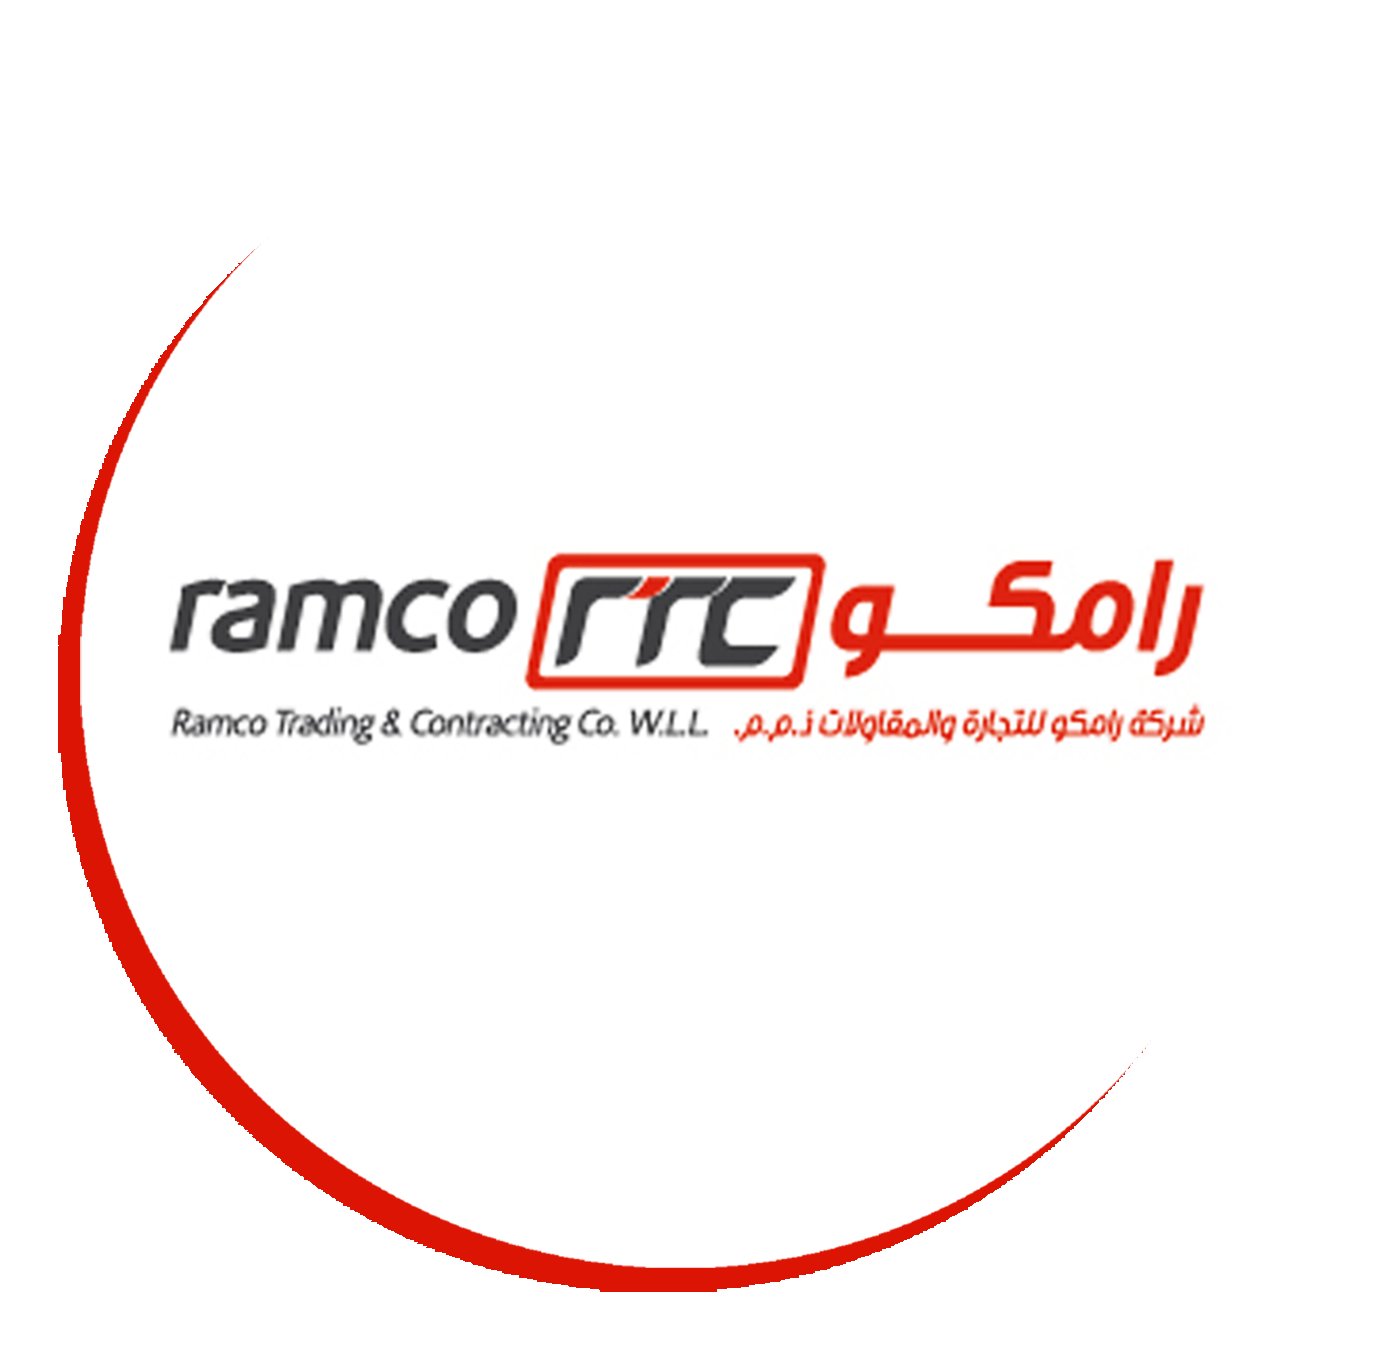 RTC - Ramco Trading & Contracting